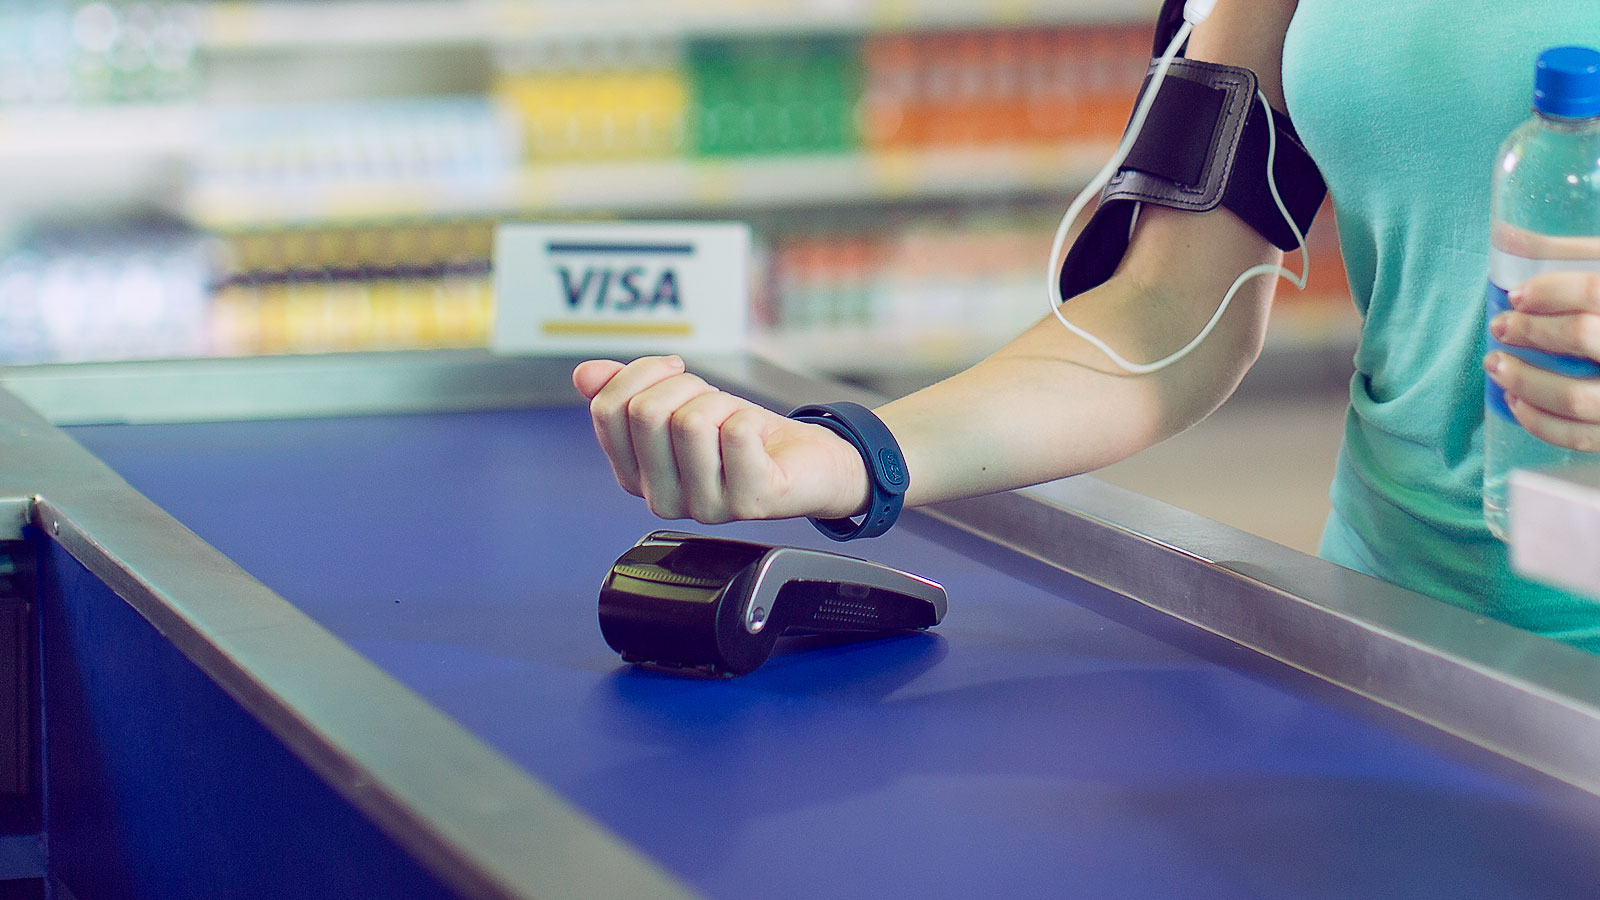 Visa - Wearables